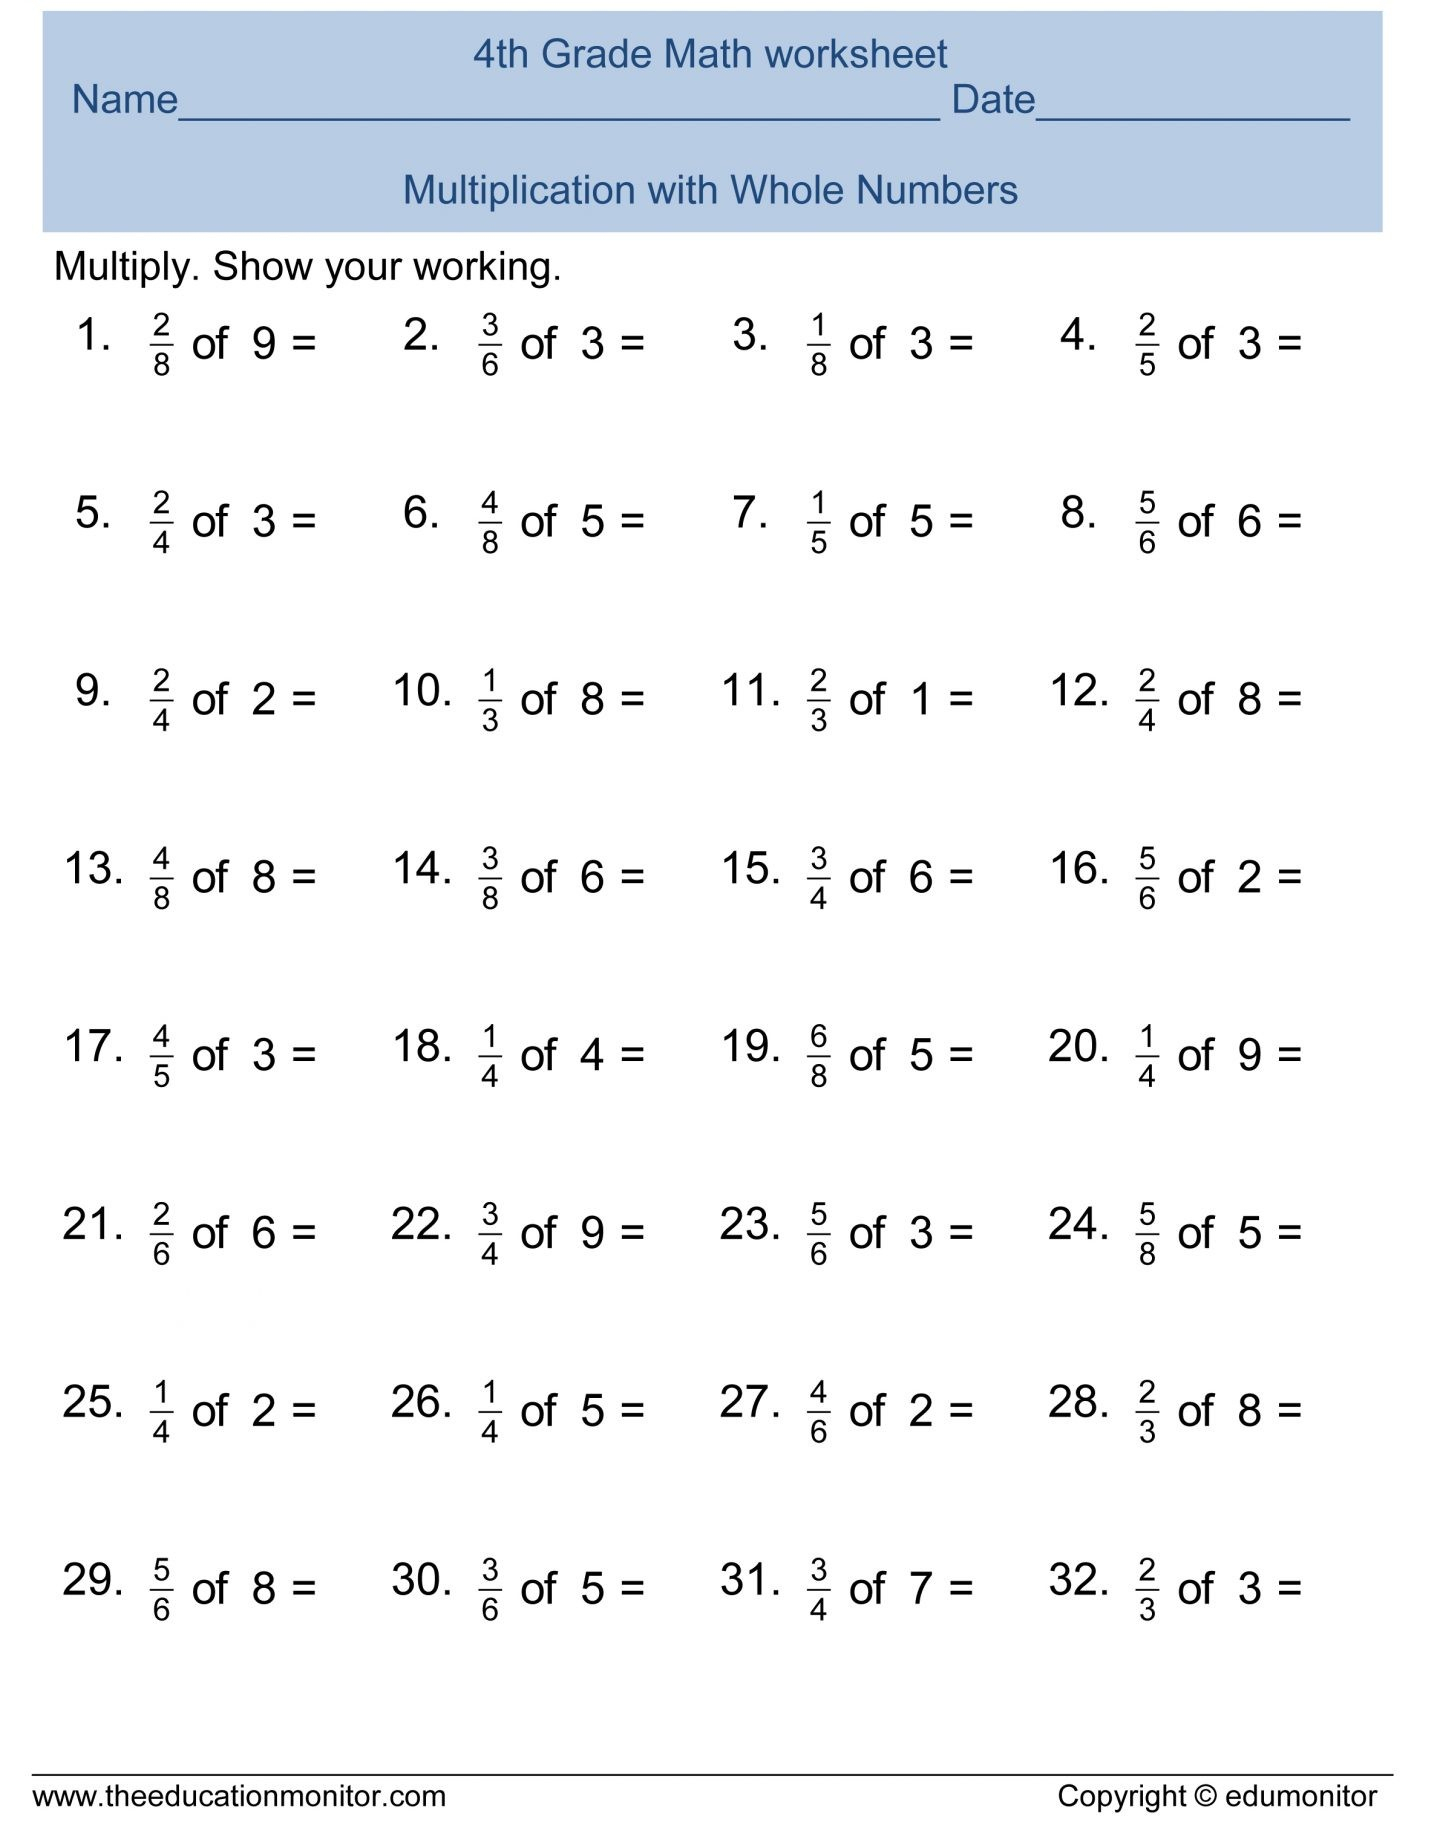 7Th Grade Math Worksheets Free Printable With Answers Stunning - 7Th | 7Th Grade Math Worksheets Free Printable With Answers